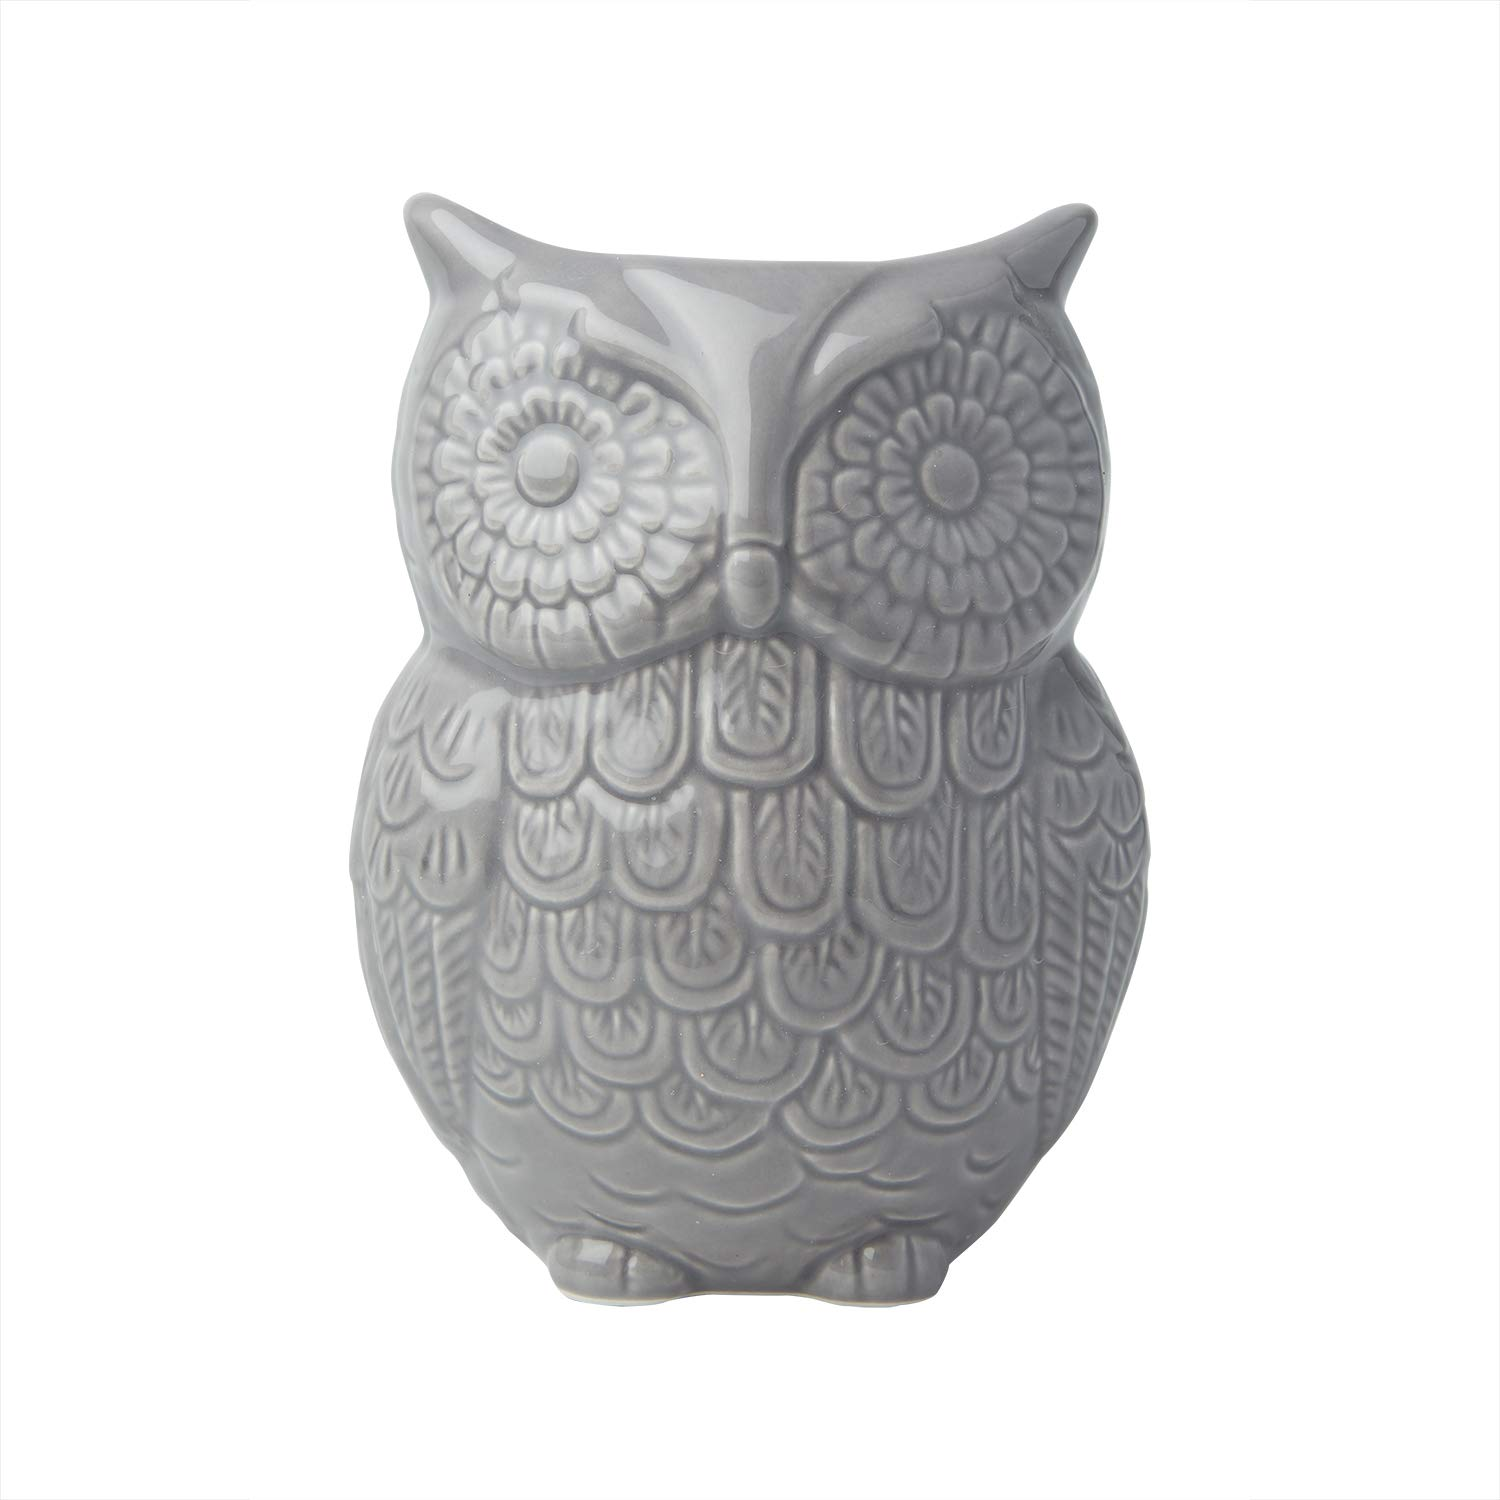 "Comfify Owl Utensil Holder Decorative Ceramic Cookware Crock & Organizer, in Lovely Grey Color - Utensil Caddy and Perfect Kitchen Ceramic Décor Gift - 5"" x 7"" x 4"" Size by Comfify (Image #1)"